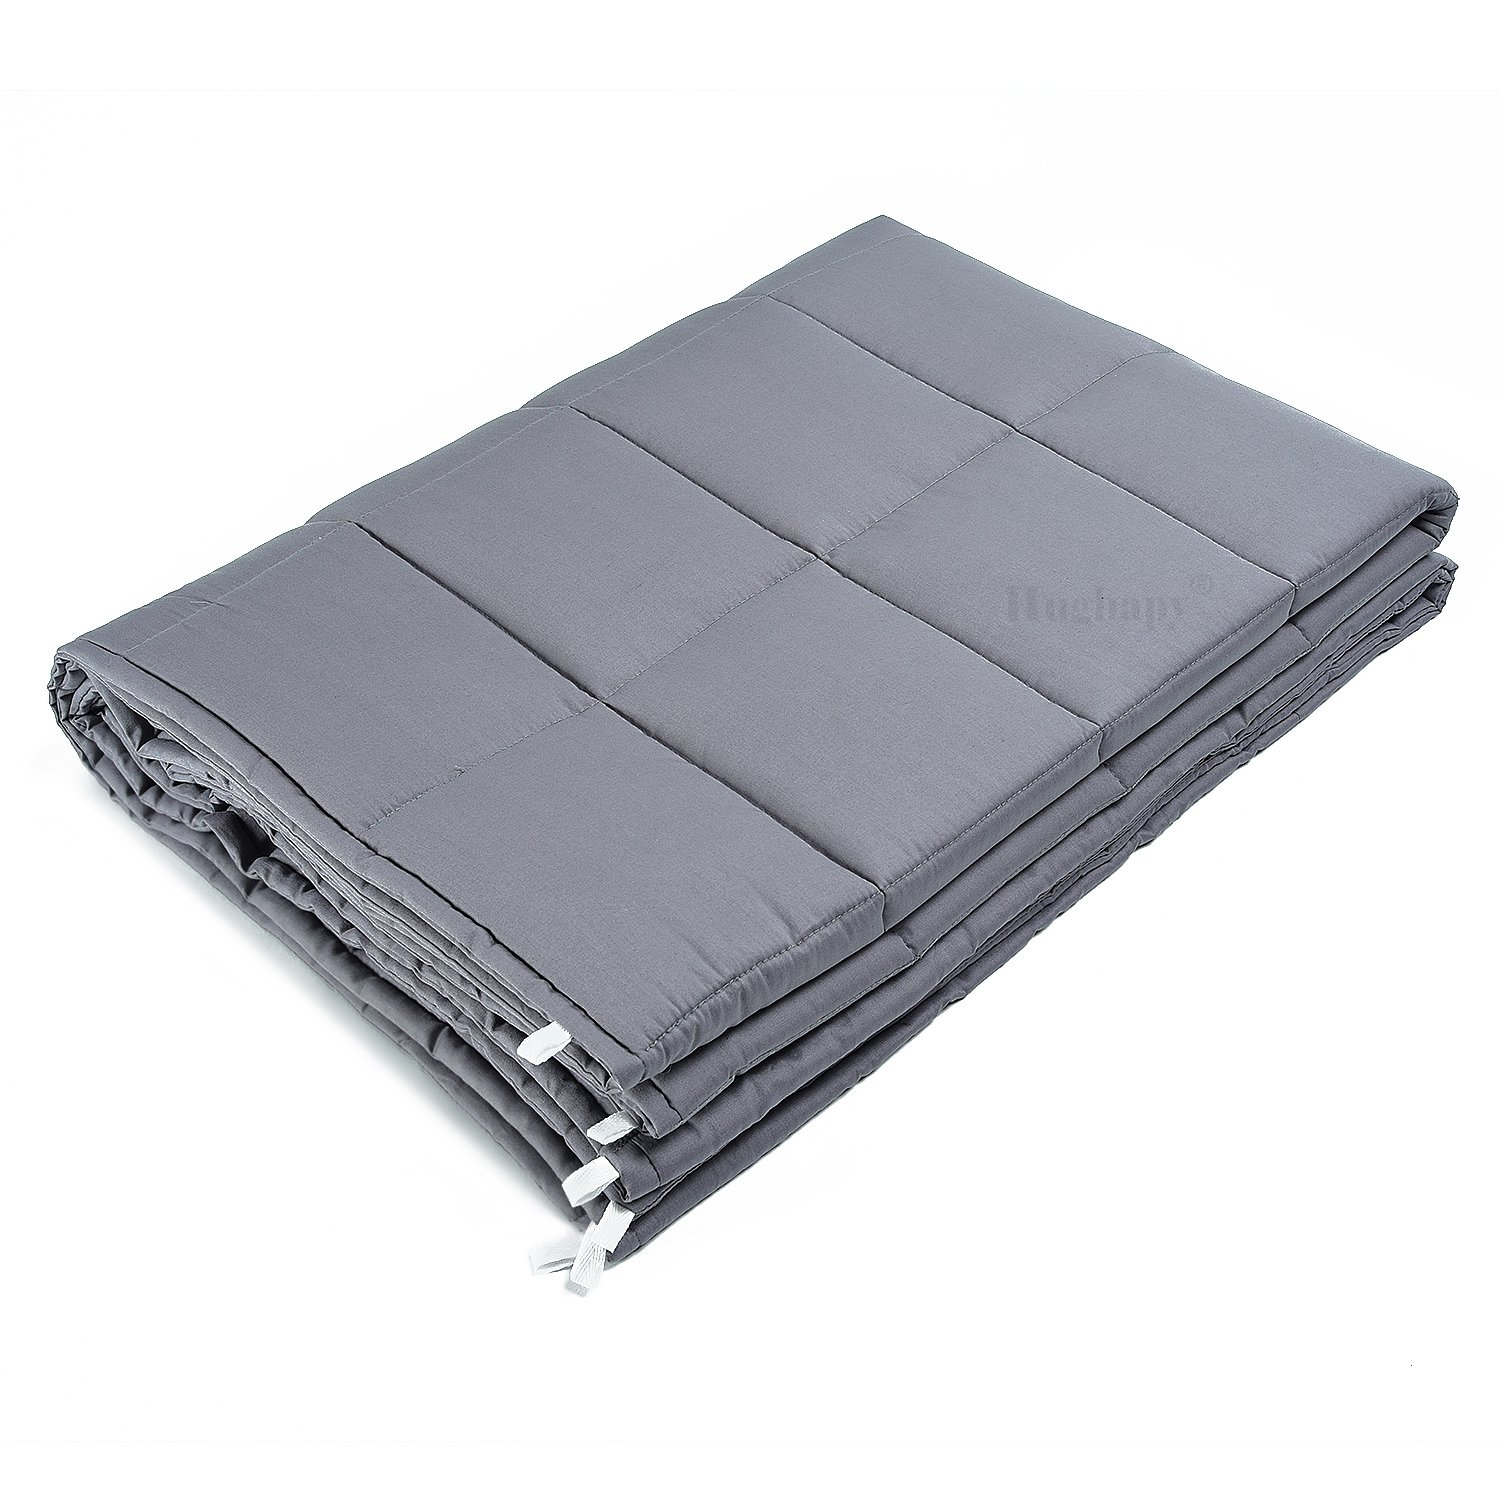 Weighted Blanket by Hughapy for Adults, Fall Asleep Faster and Sleep Better, Great for Anxiety, ADHD, Autism, OCD, and Sensory Processing Disorder (Grey, 48''x72'',15 lbs for 140 lbs individual)